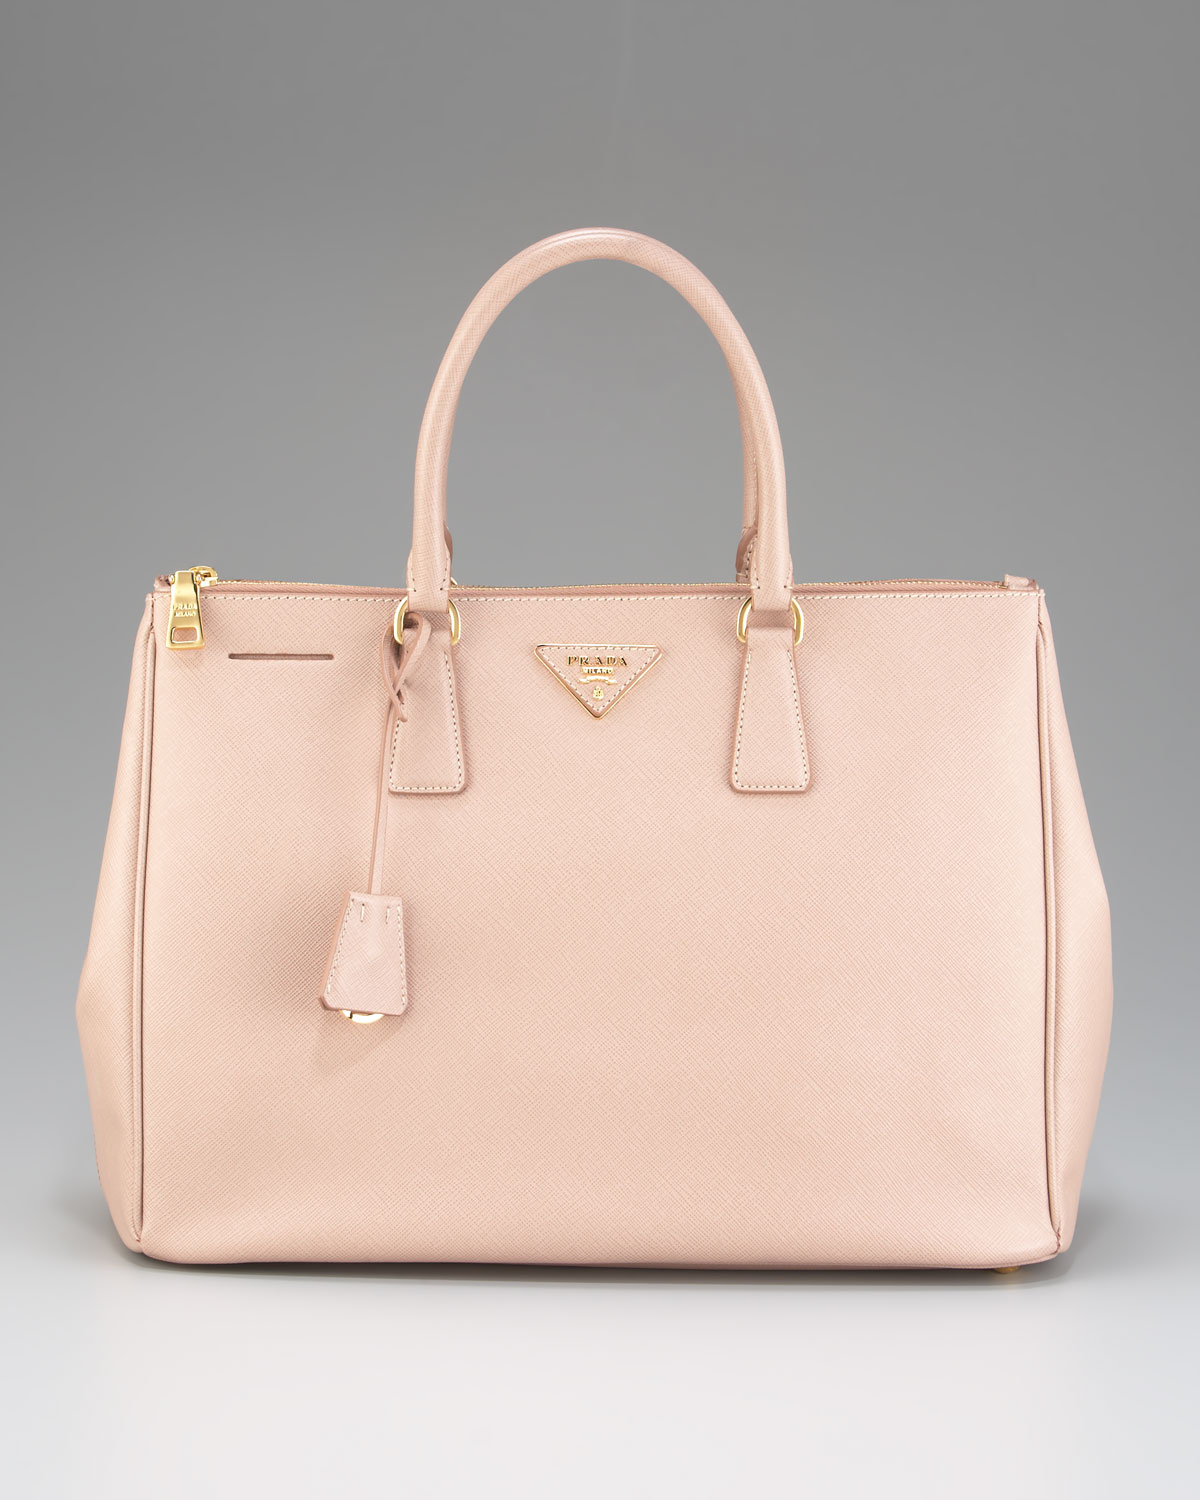 5daf1894ee63 Prada Saffiano Lux Executive Tote in Natural - Lyst